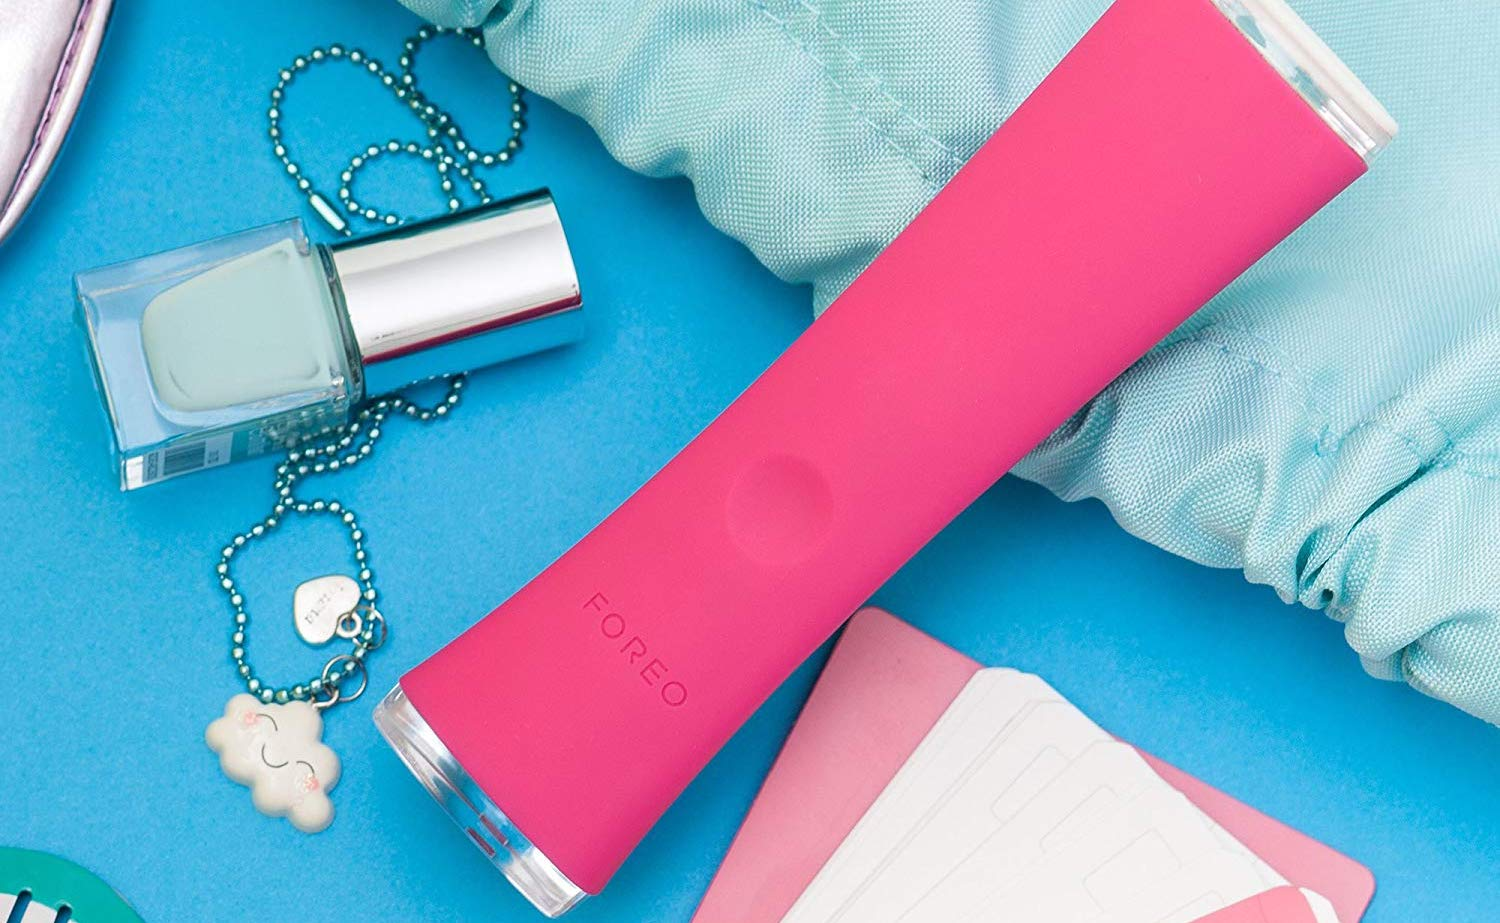 The Foreo Espada Gets At Your Acne Below The Surface